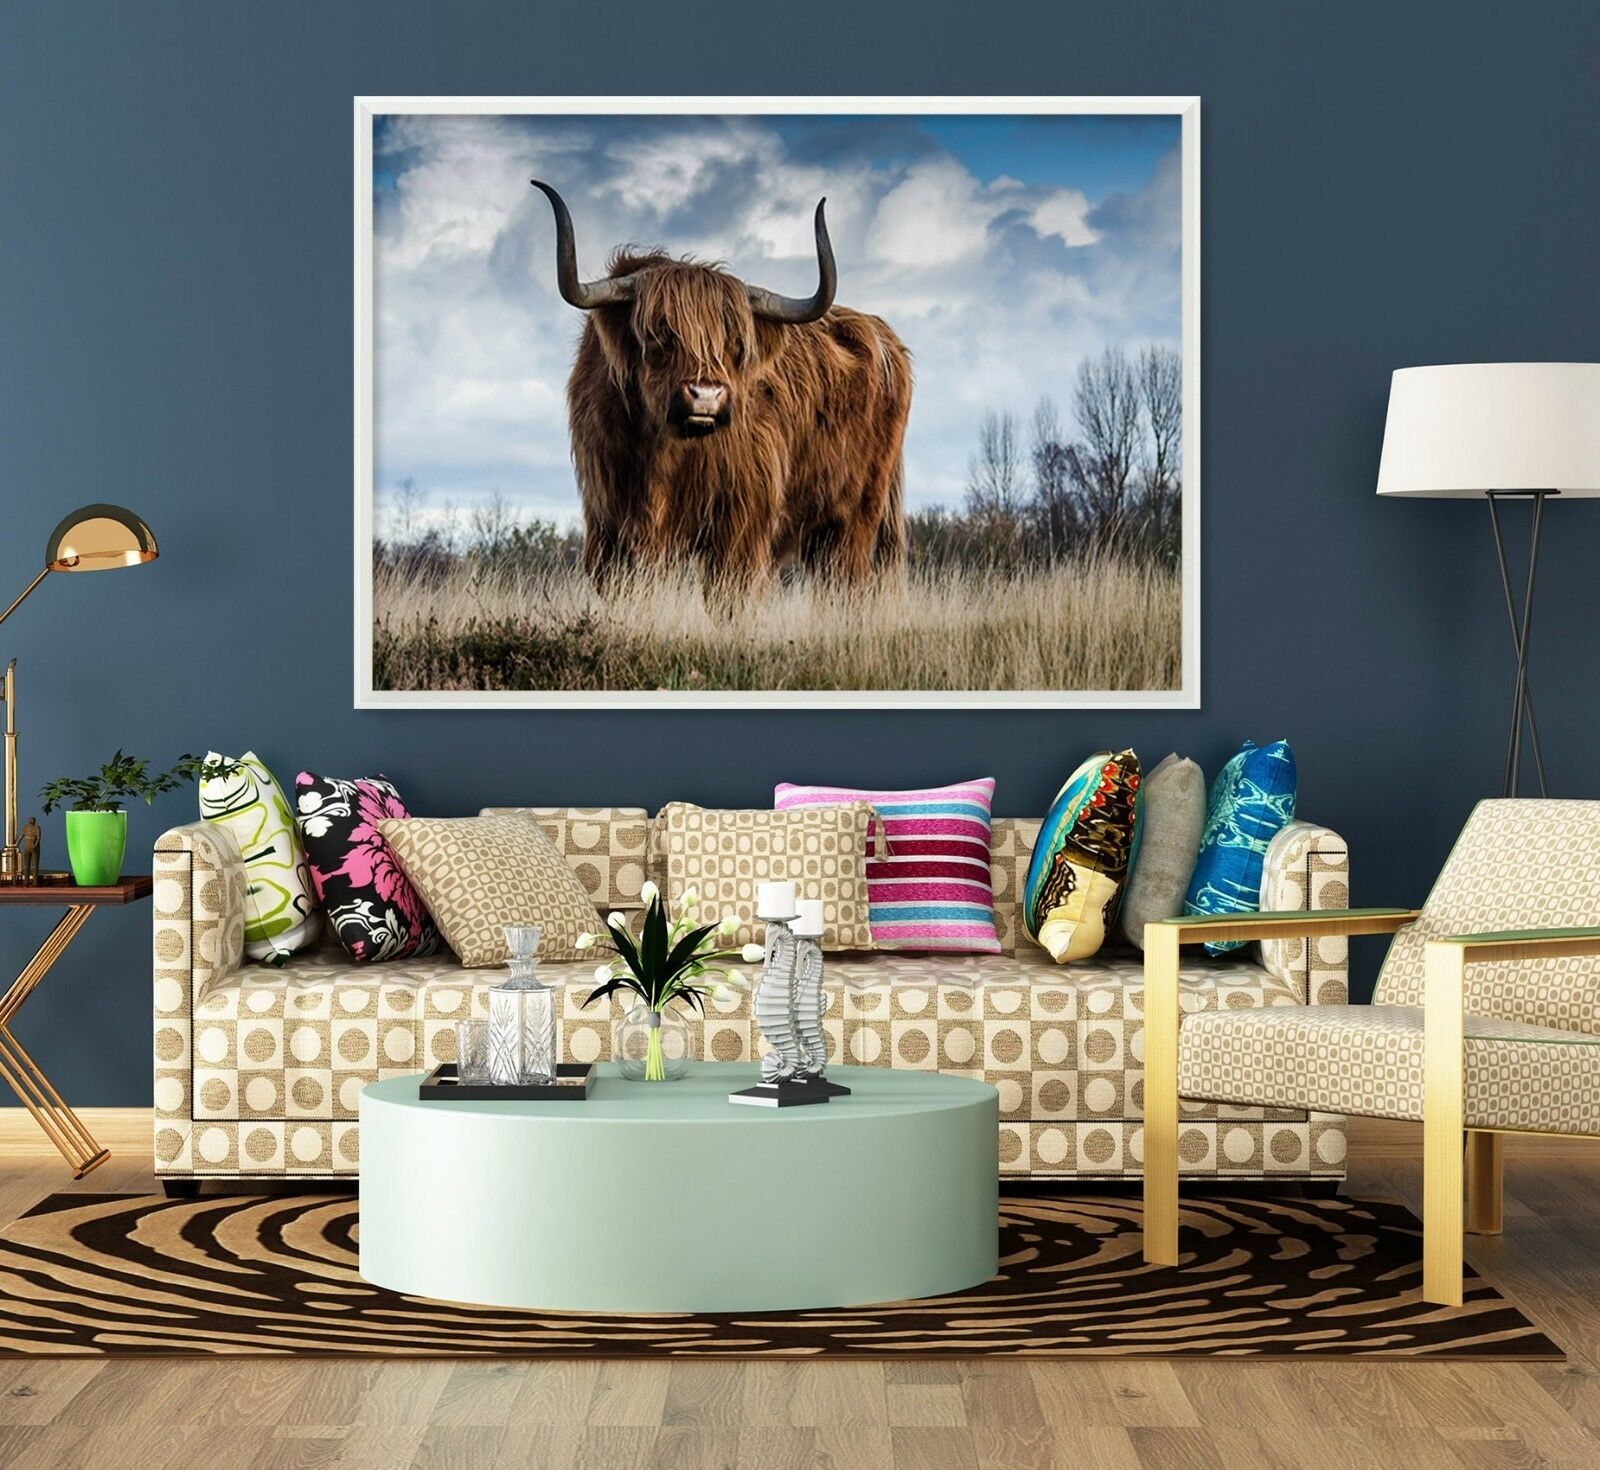 3D Lawn Cattle 64 Fake Framed Poster Home Decor Print Painting Unique Art Summer